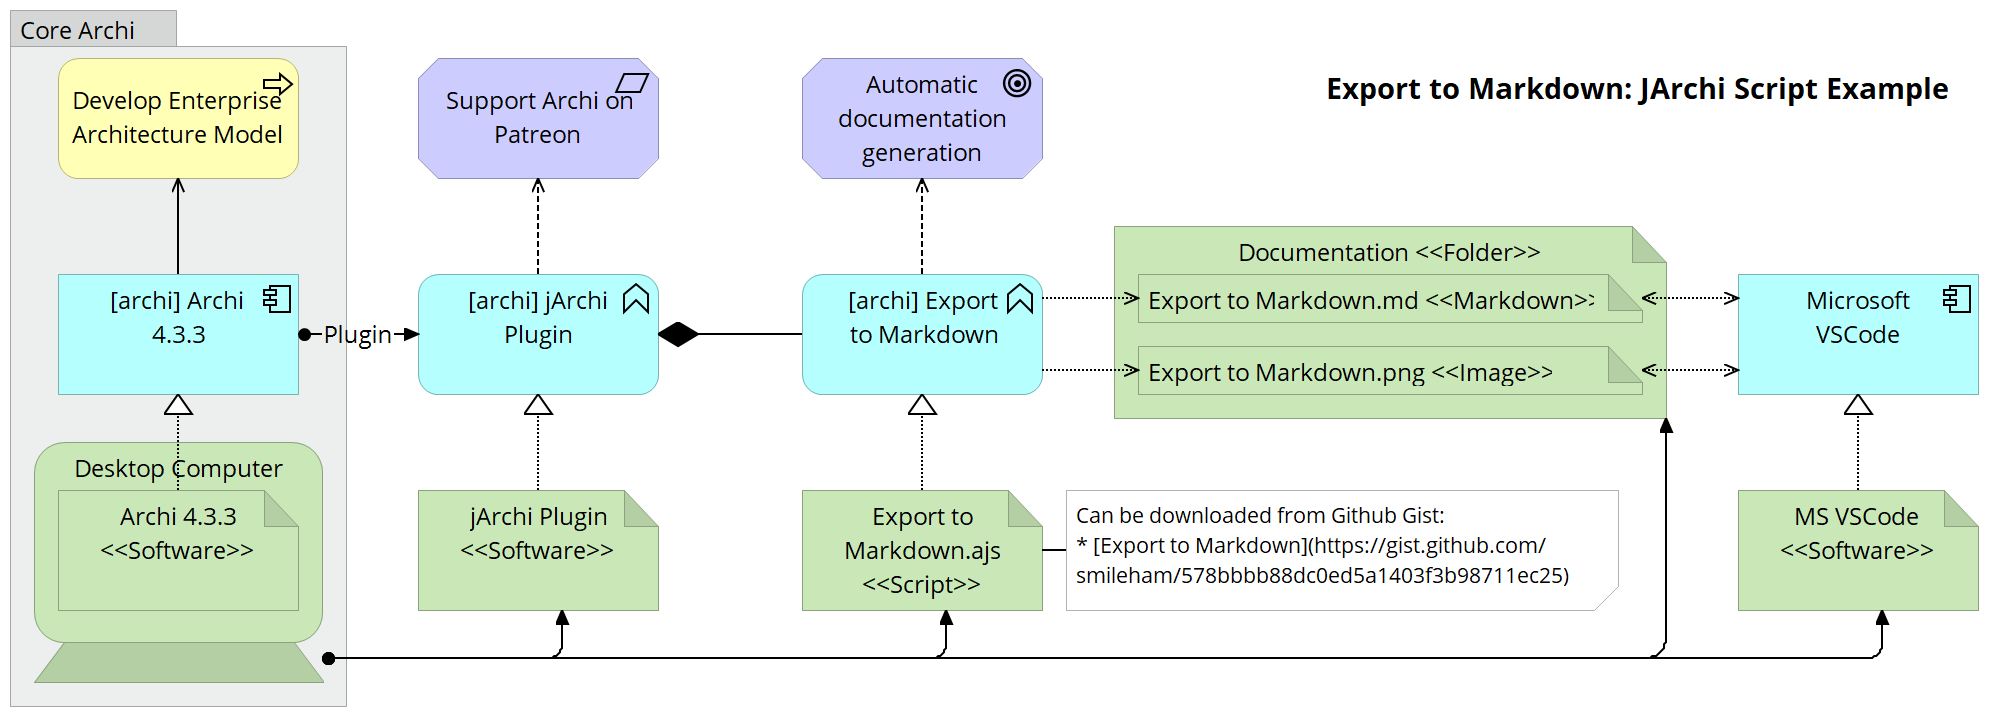 Export to Markdown